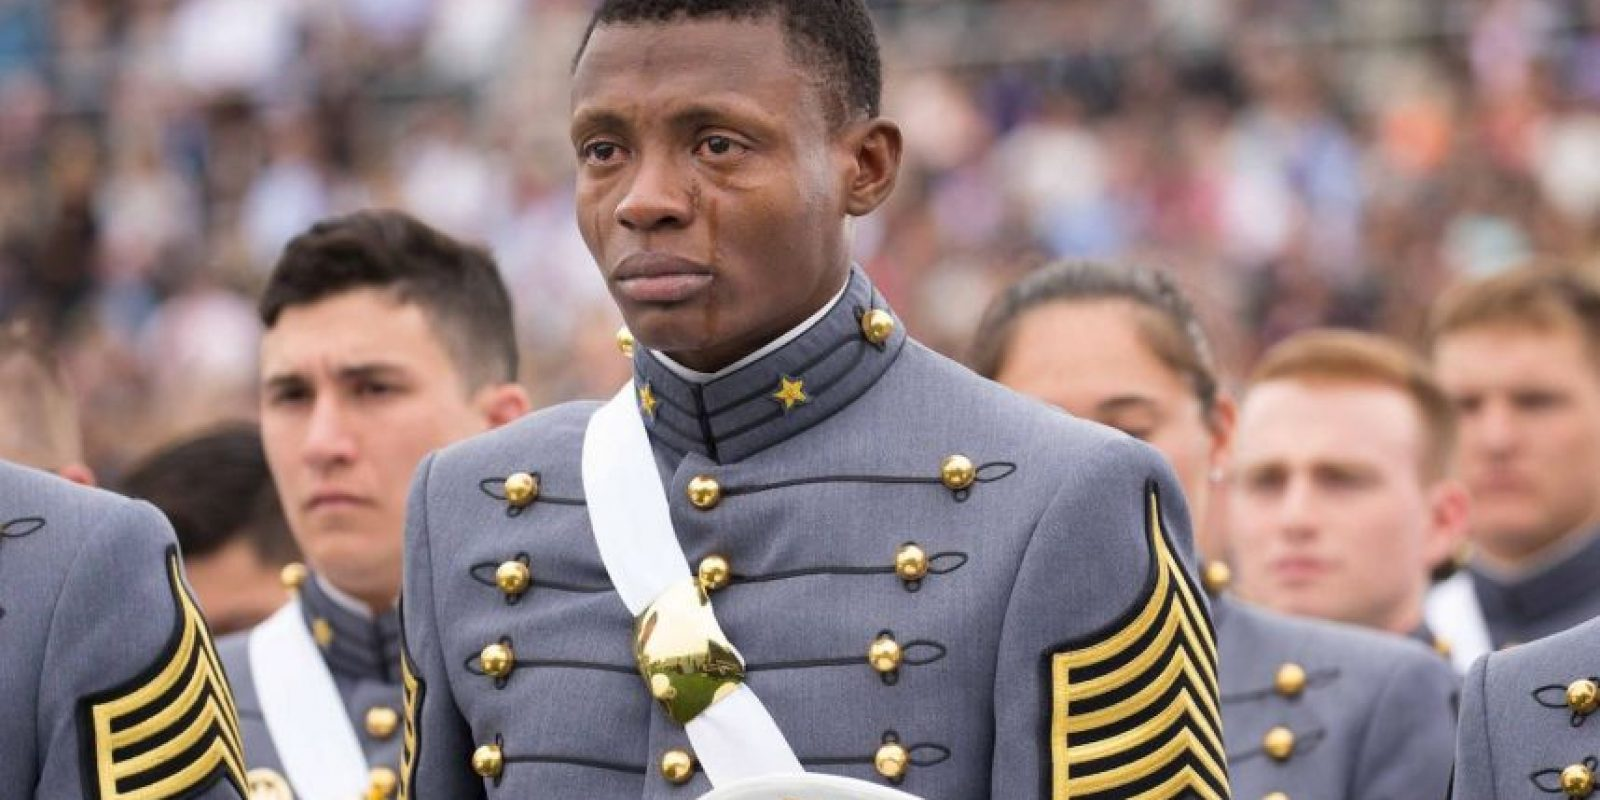 Alix Schoelcher Idrache lloró durante la graduación de la Academia Militar de West Point, en Nueva York. Foto: West Point – The U.S. Military Academy